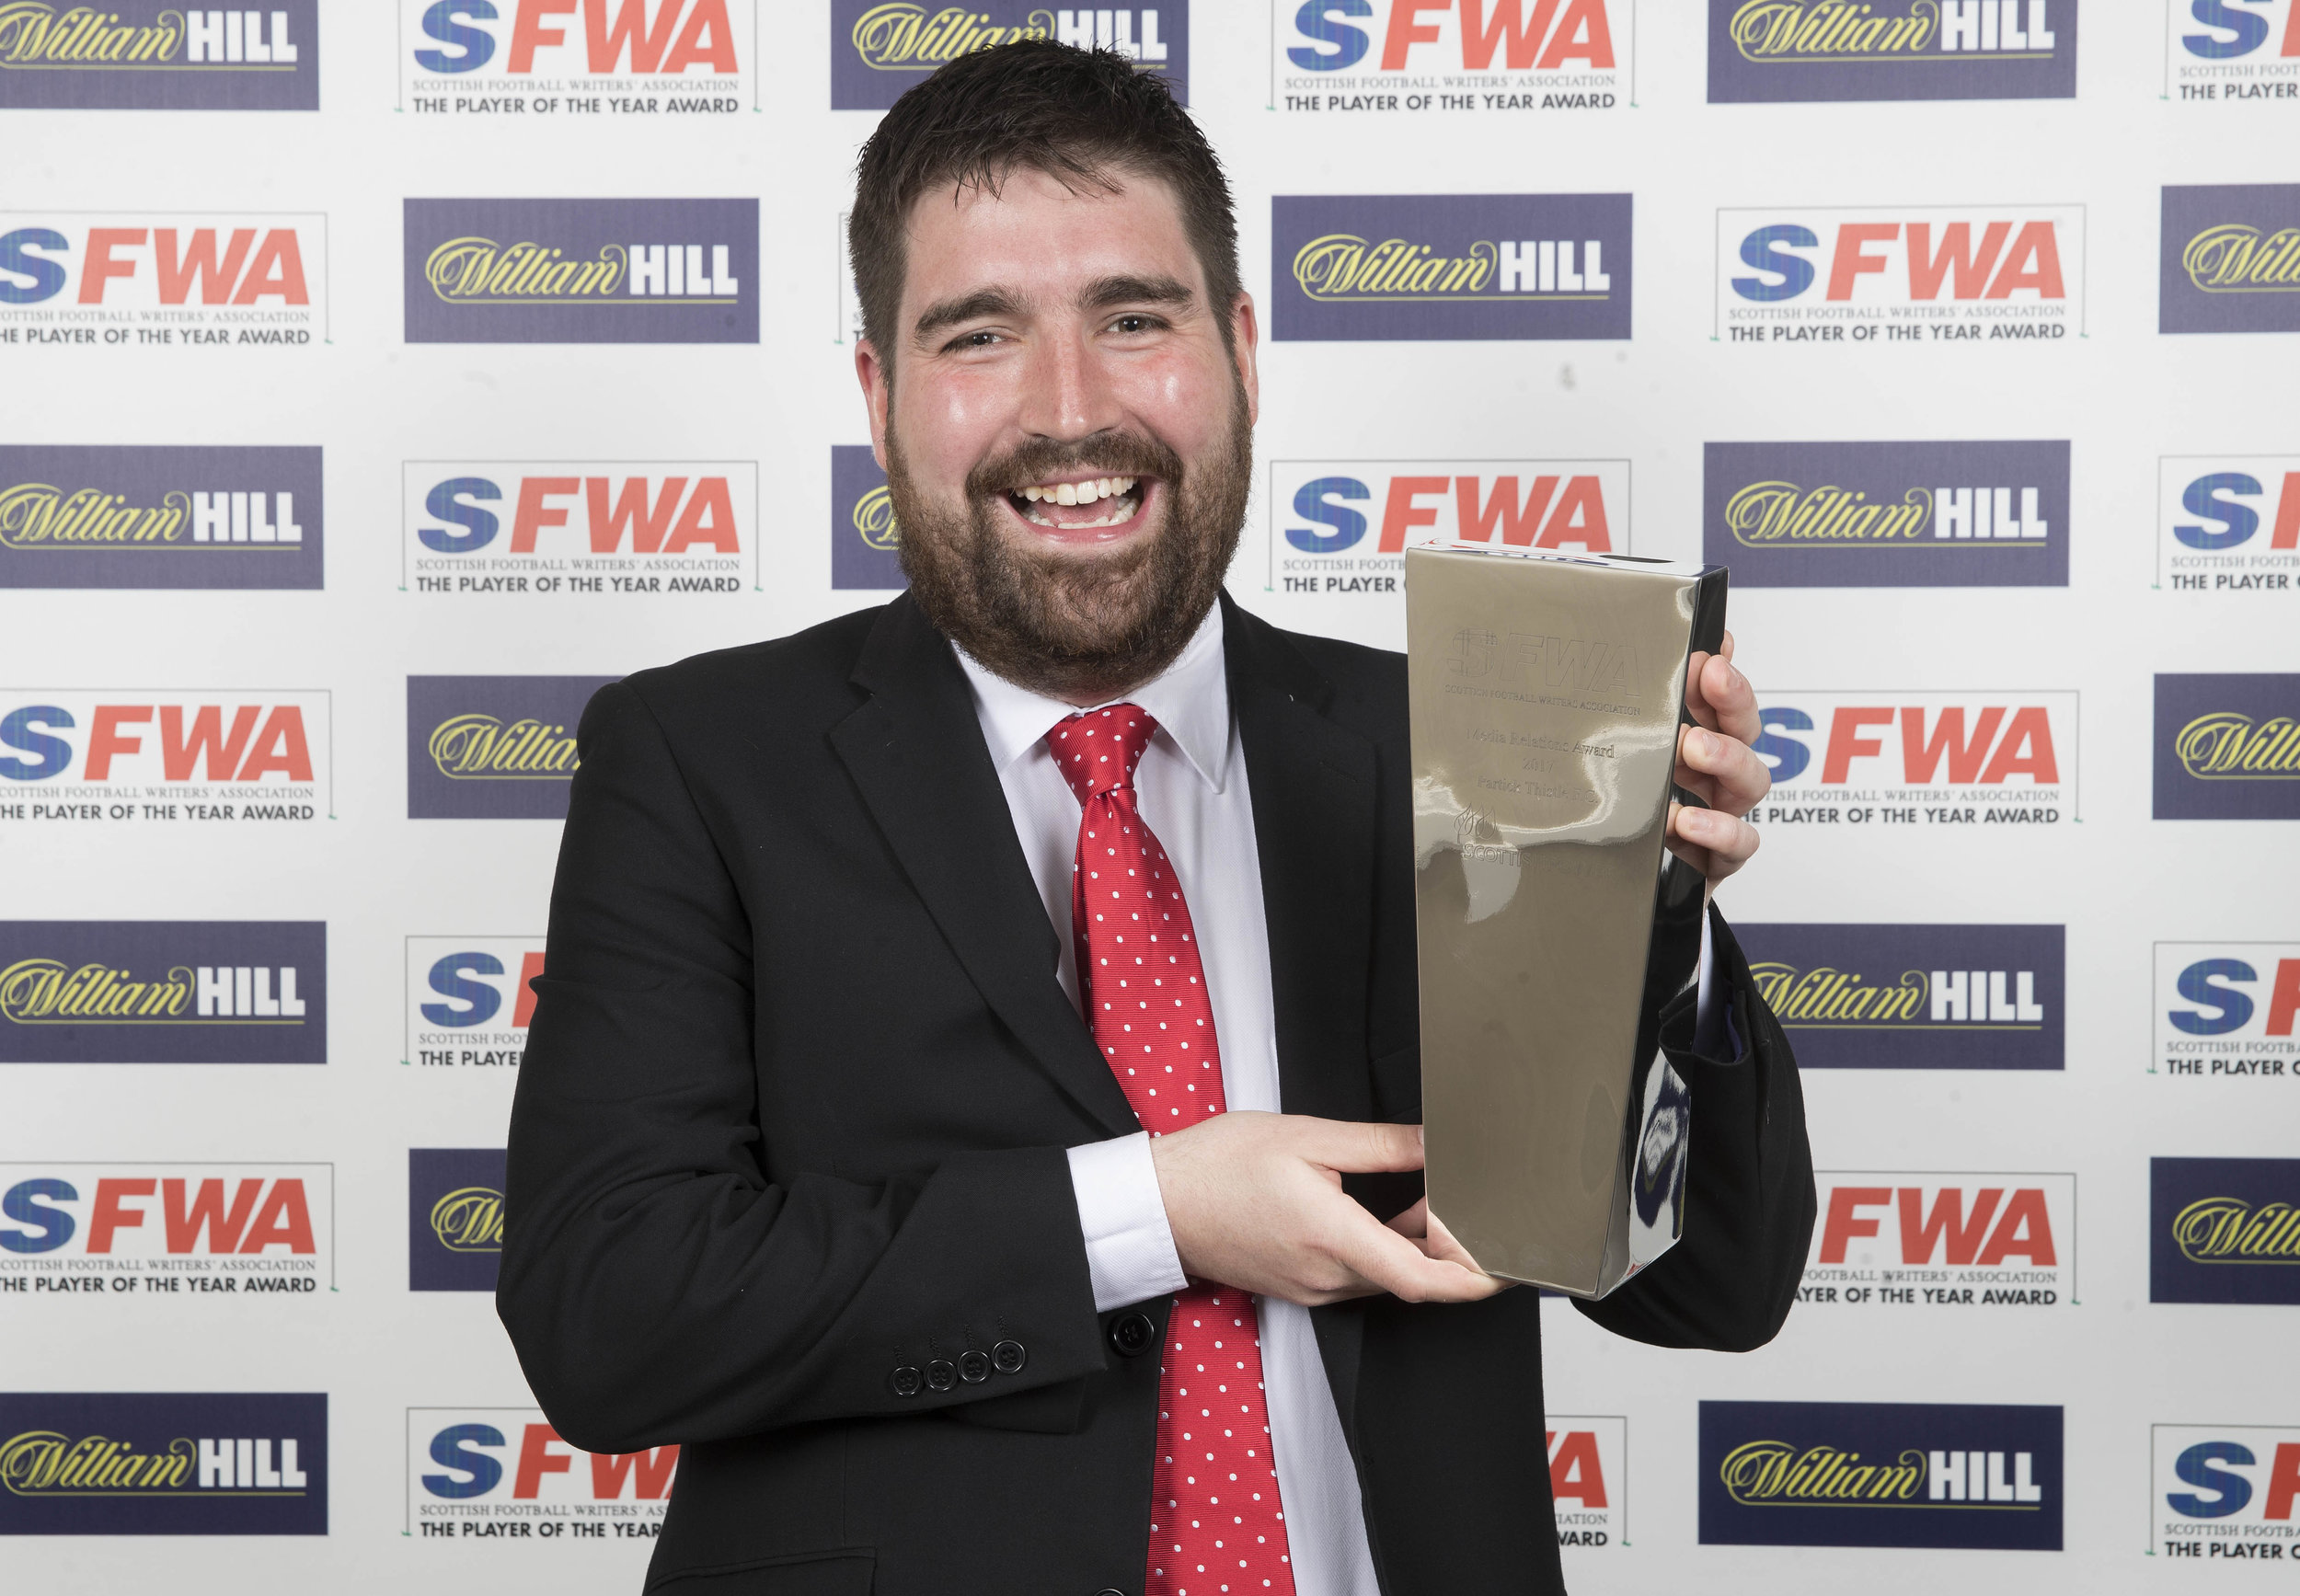 Partick Thistle's head of communications George Francis won widest smile of the night